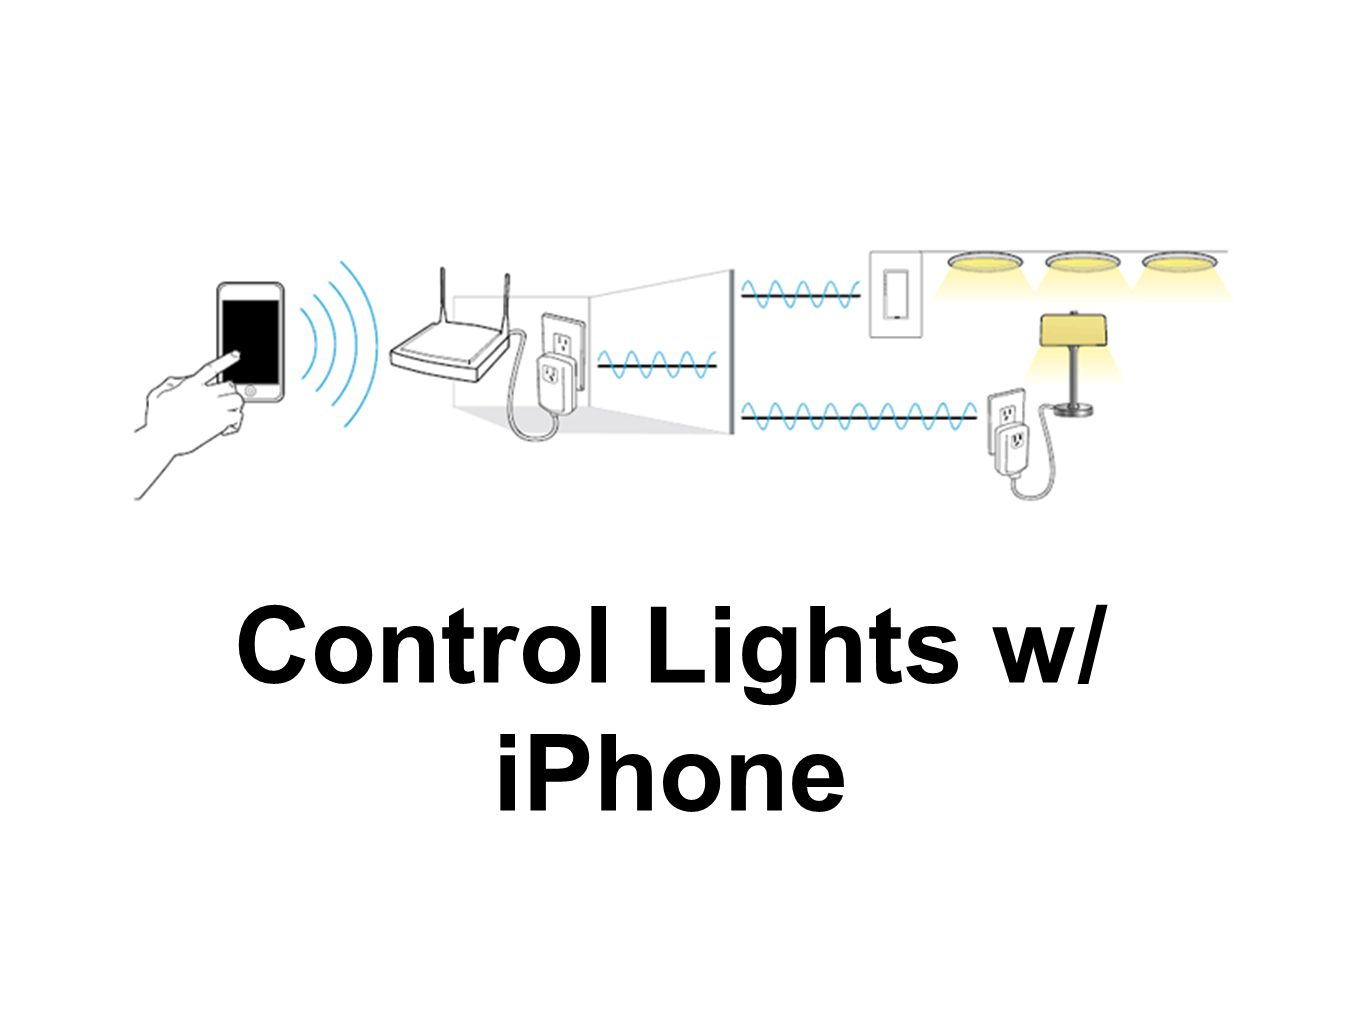 Control Lights w/ iPhone